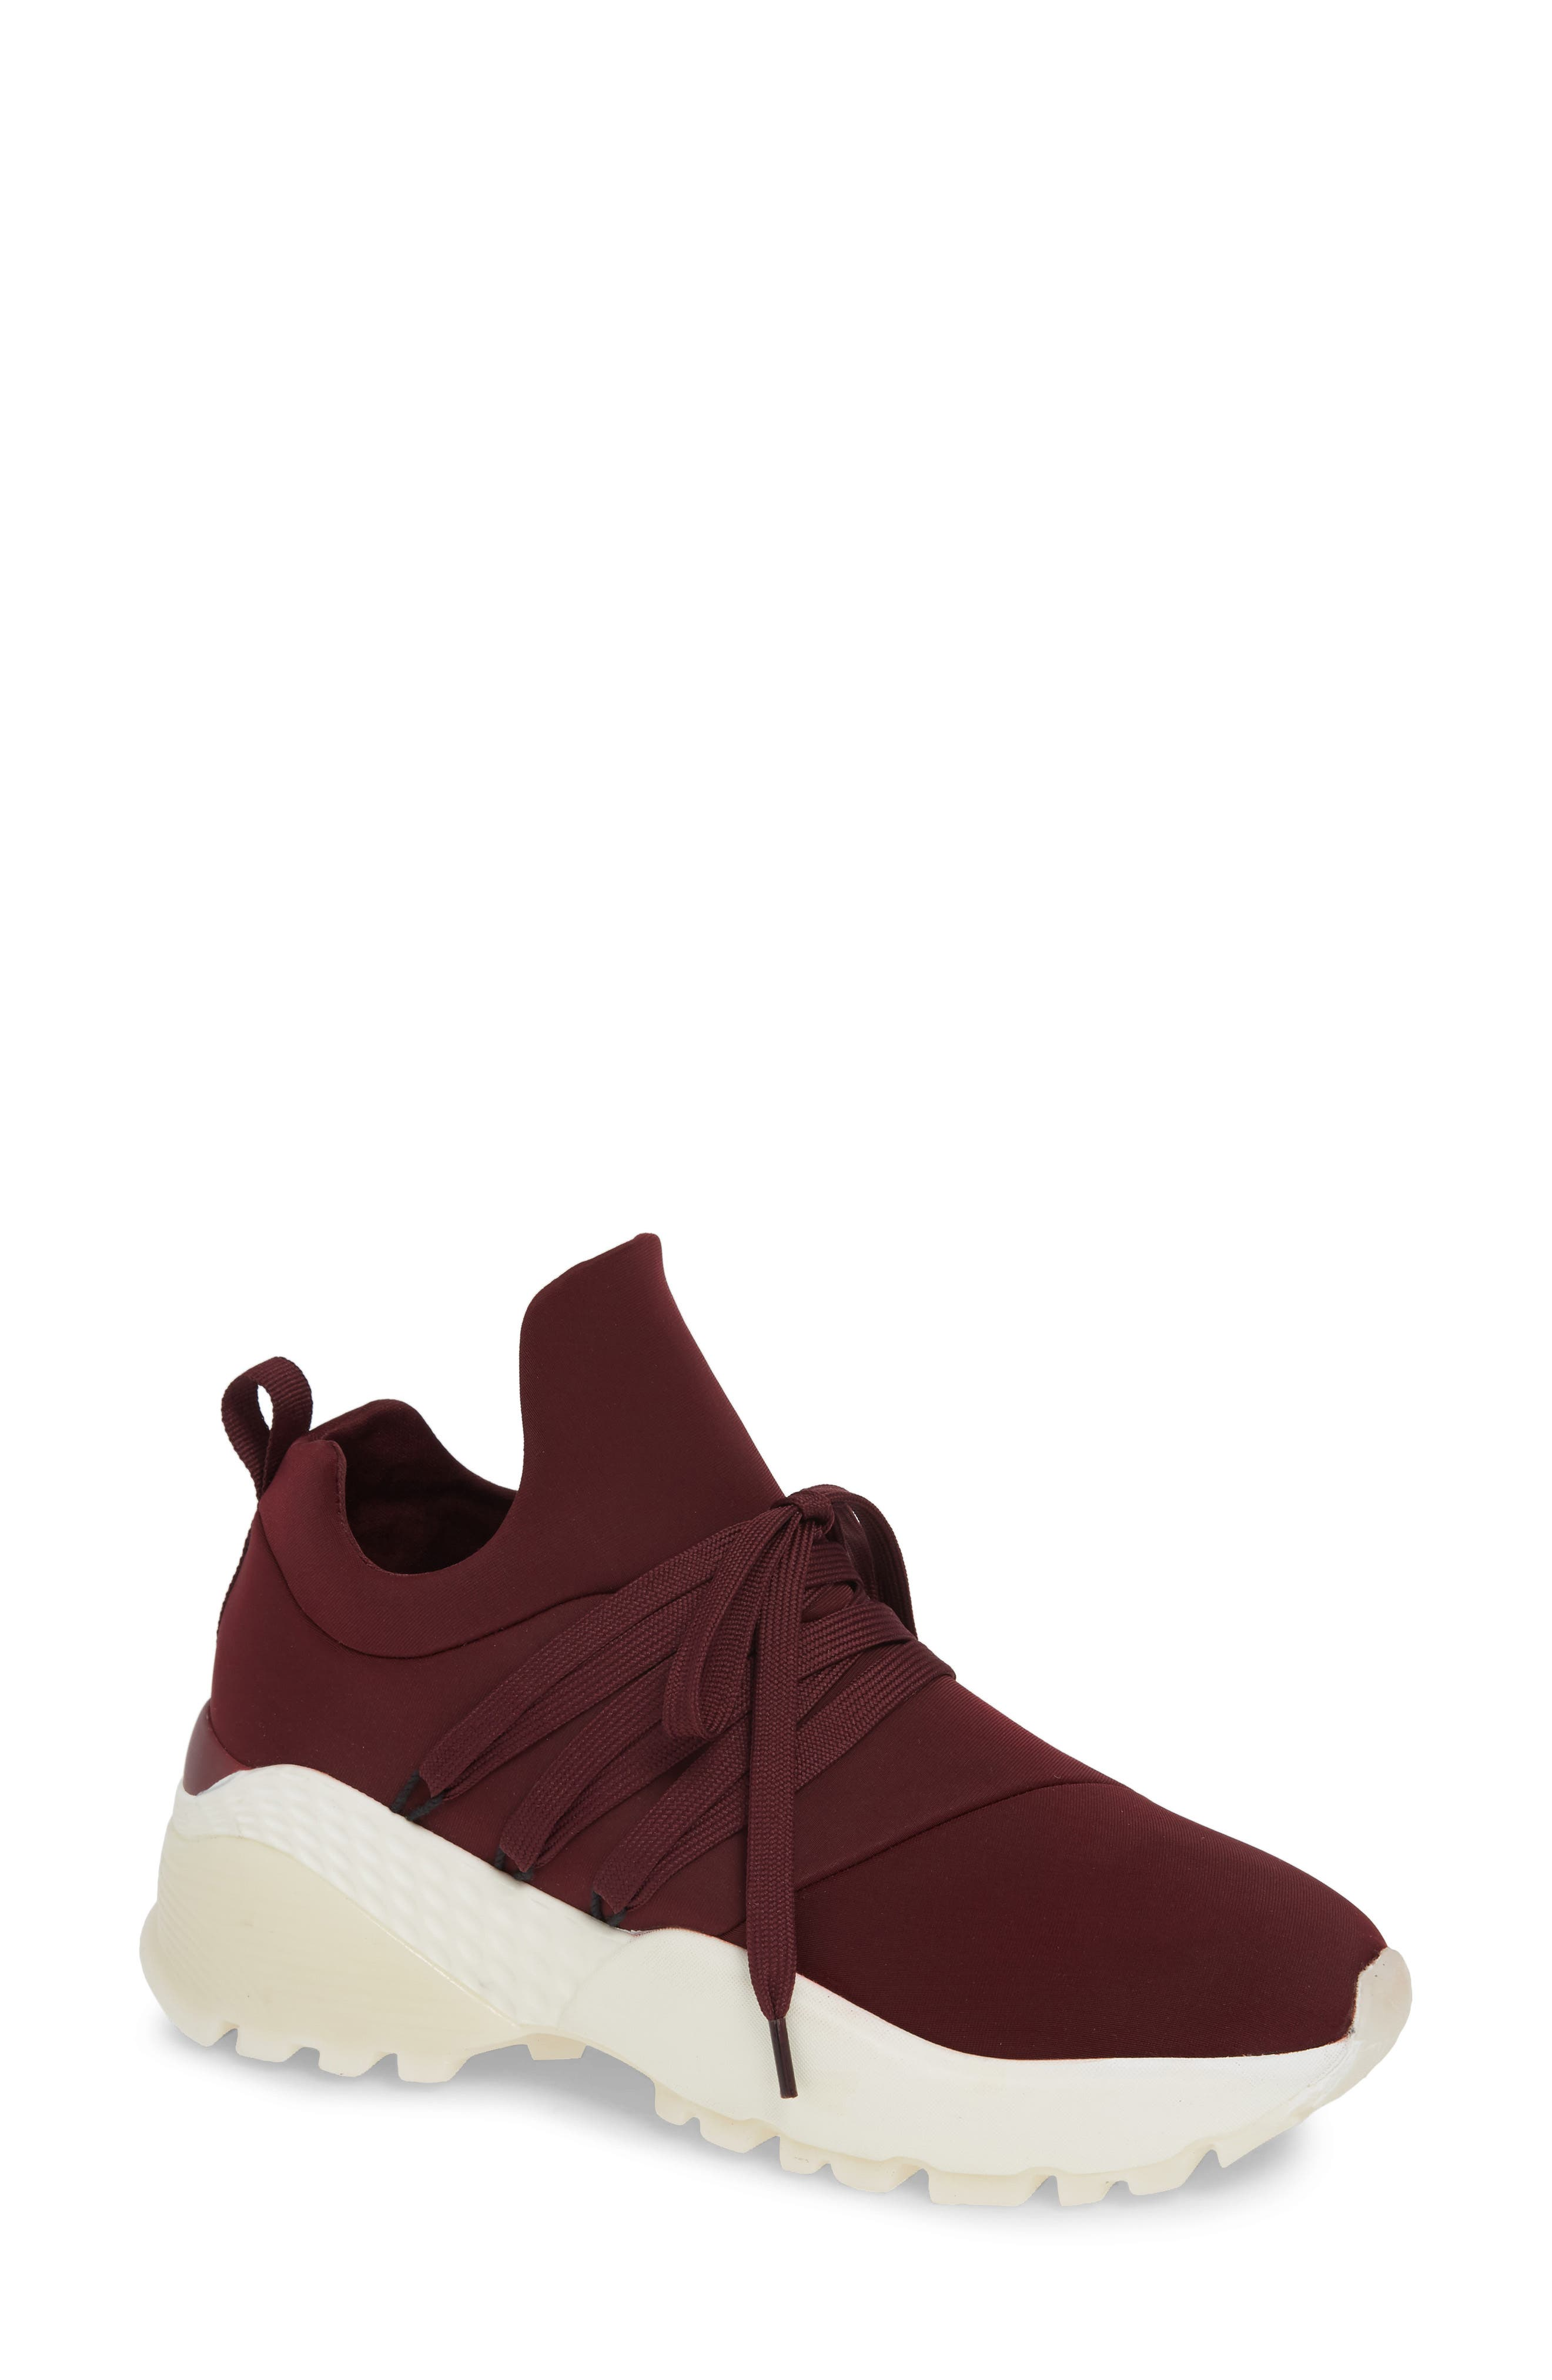 JSLIDES Morrow Slip-On Sneaker in Burgundy Fabric